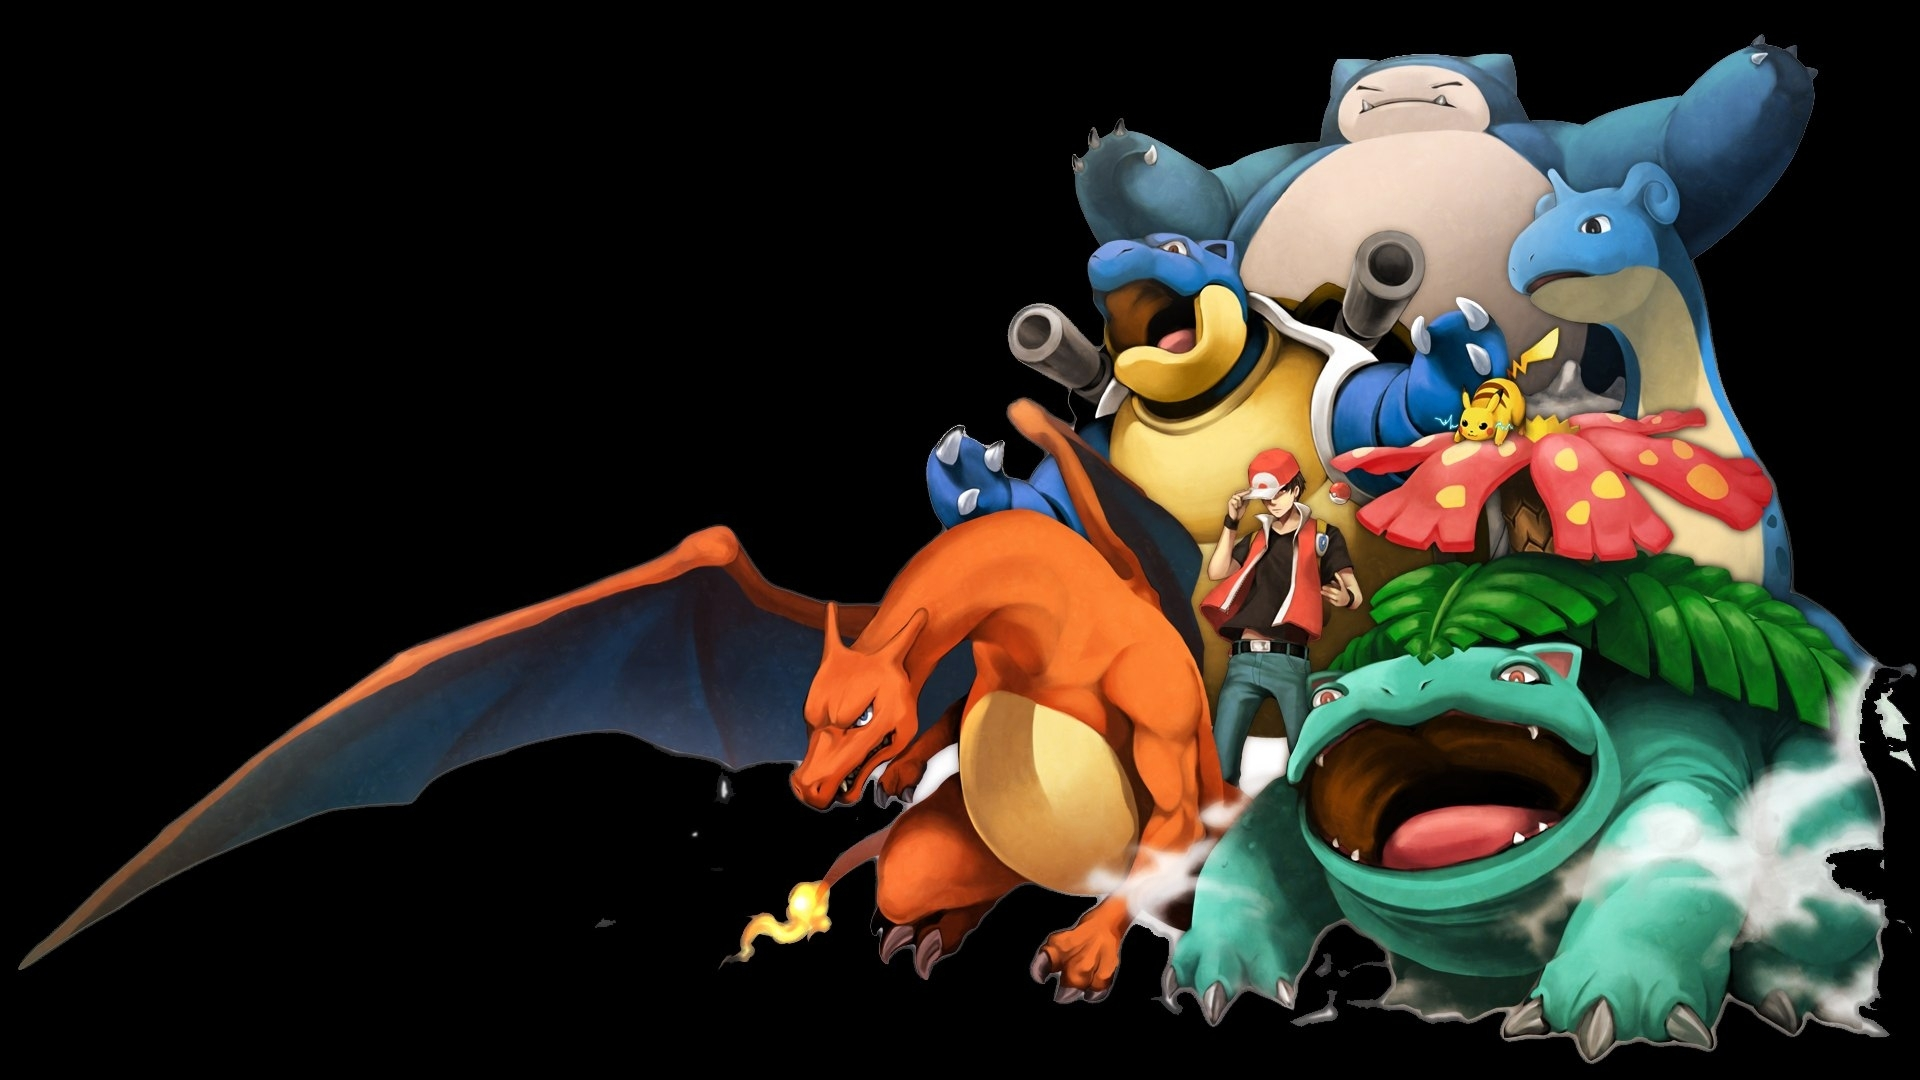 pokemon wallpapers, 39 pokemon 2016 wallpaper's archive, new pictures